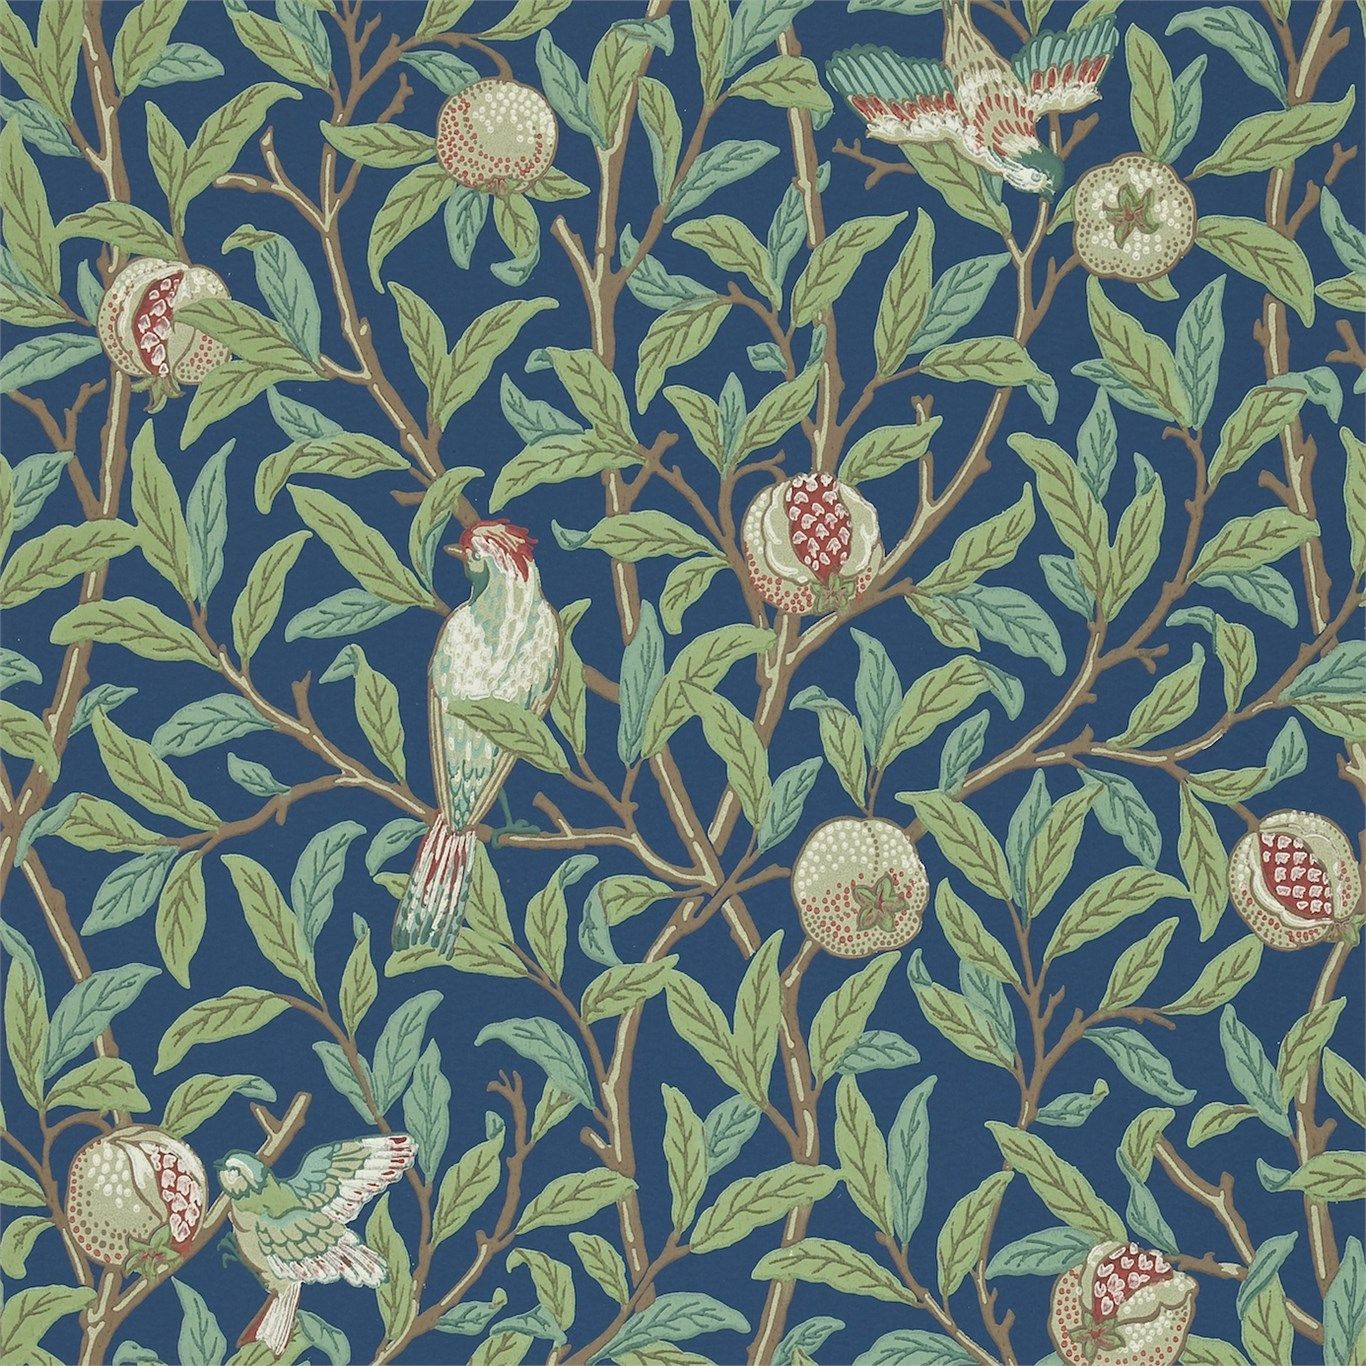 Bird Pomegranate 212540 William Morris Wallpaper Morris Wallpapers William Morris Art